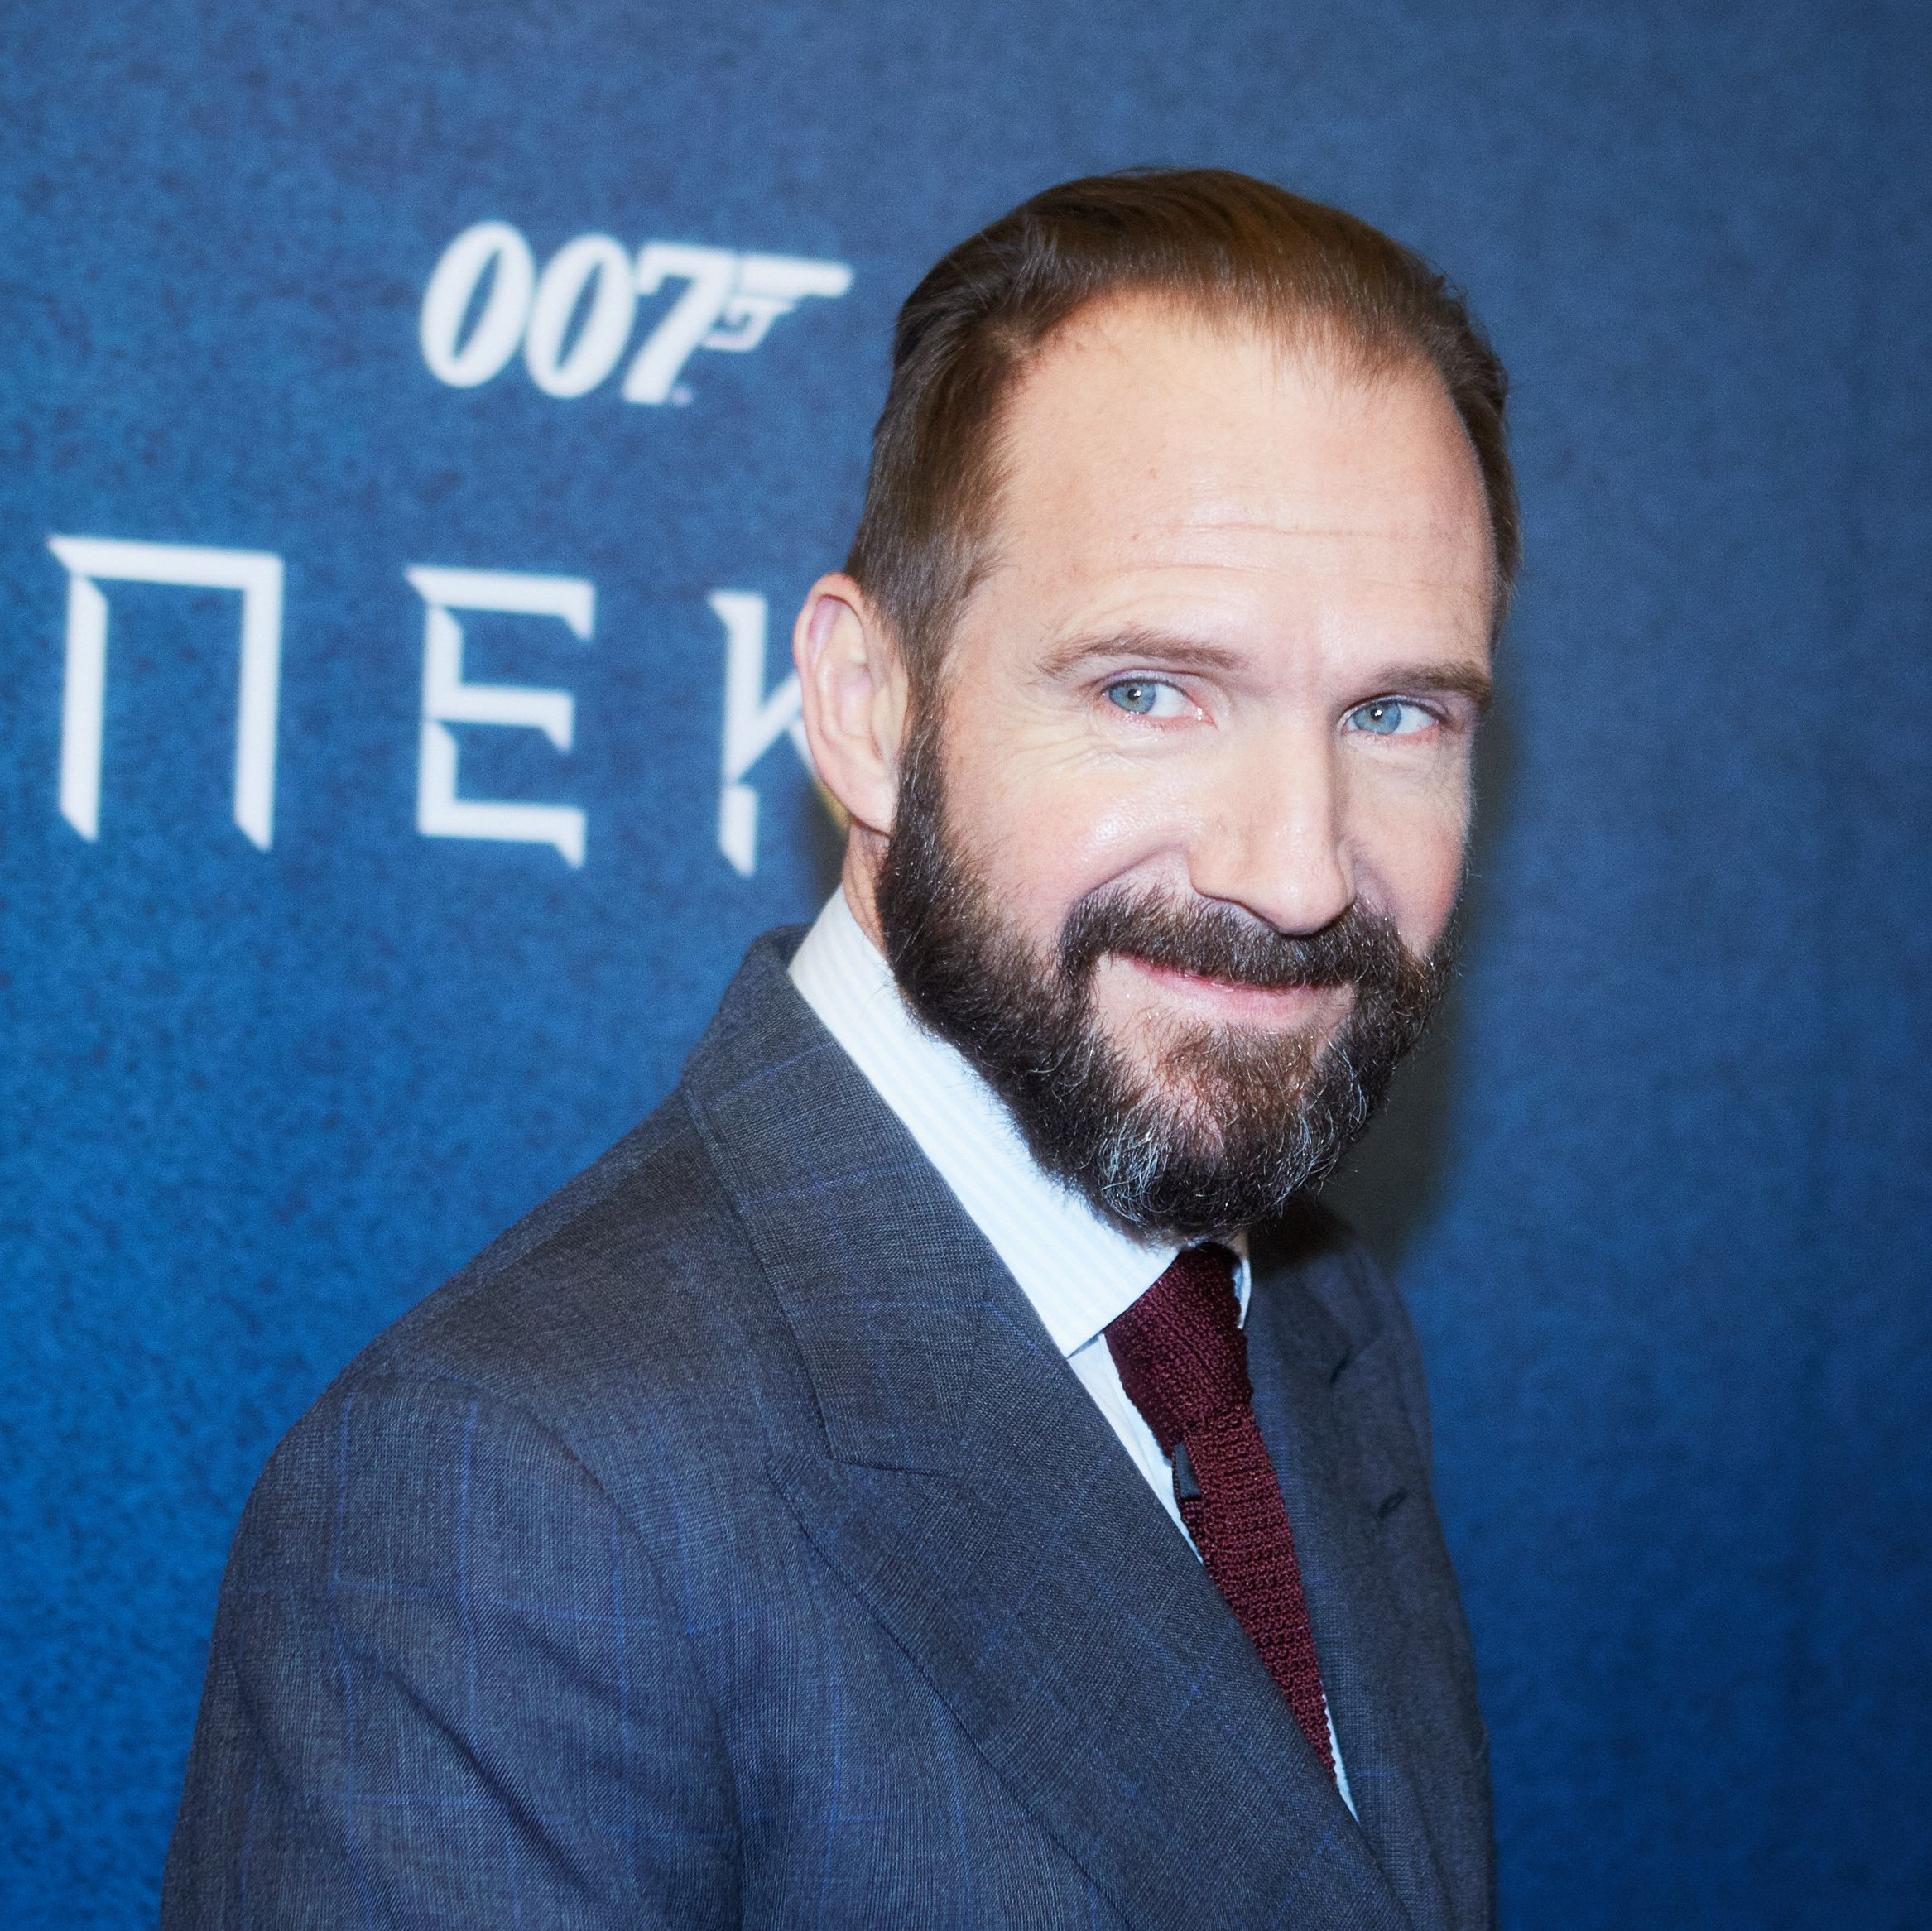 Ralph Fiennes, who plays M in the latest James Bond movies, at the Moscow premier of SPECTRE in 2015.